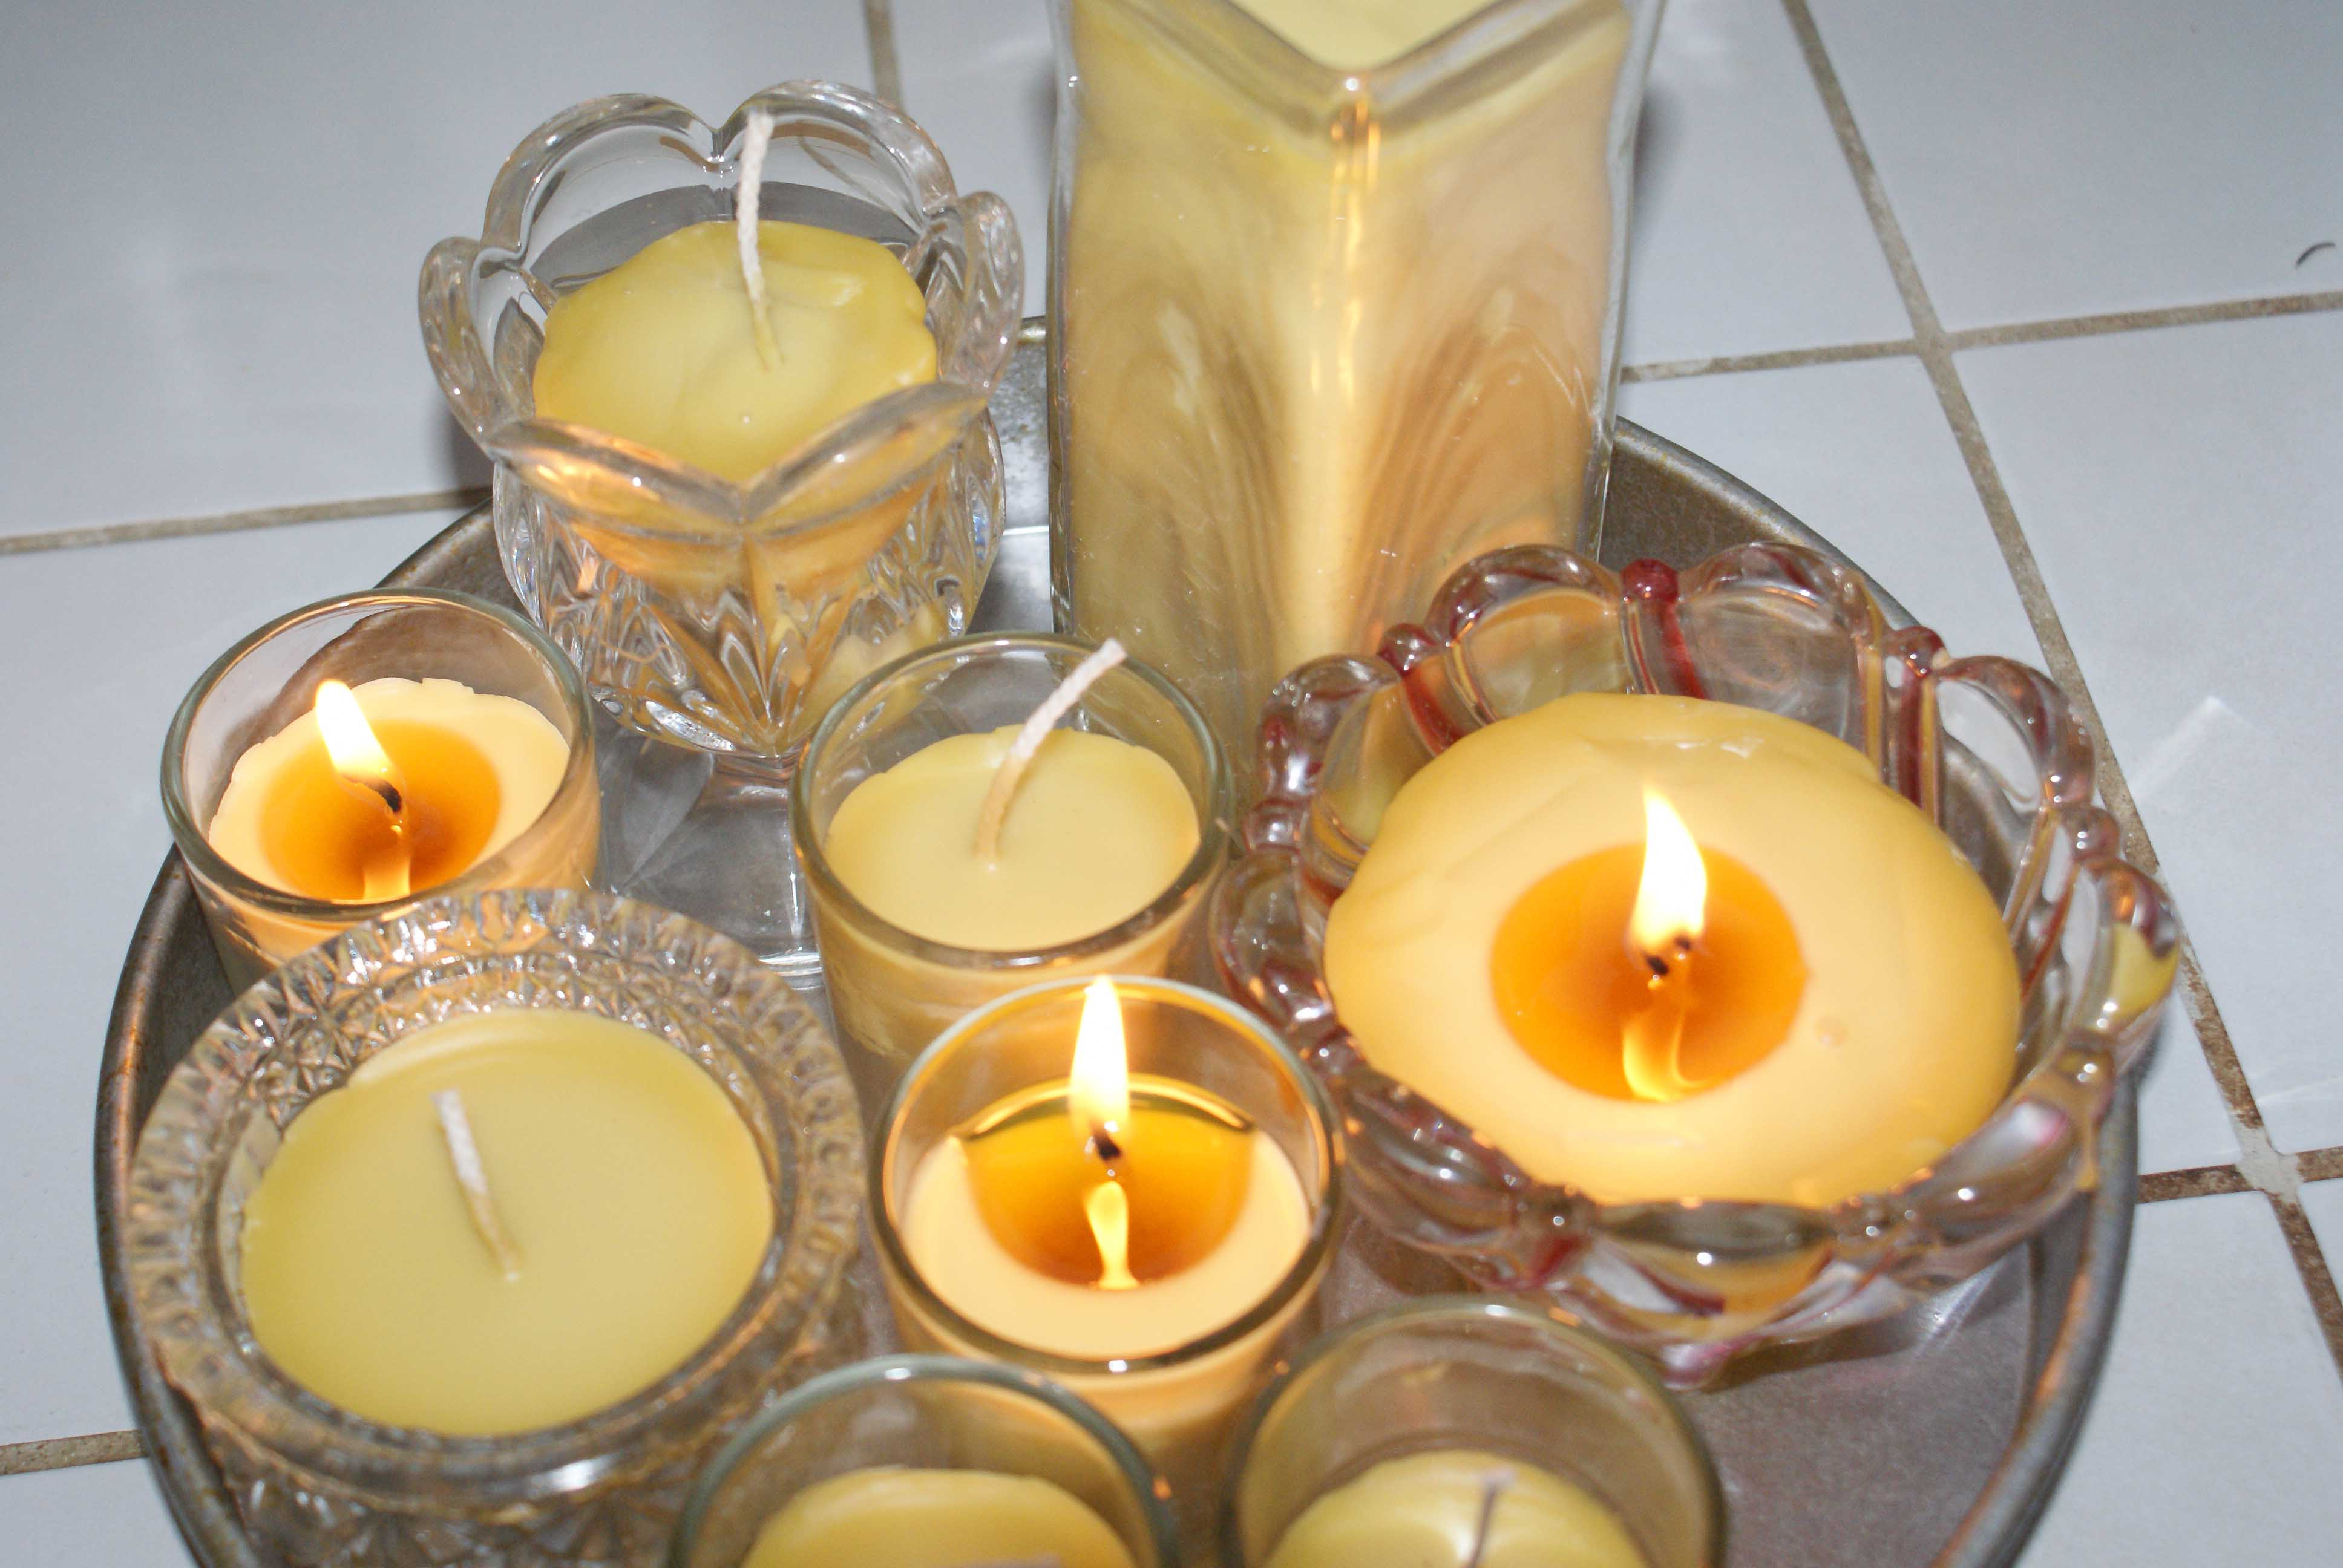 Making Beeswax Candles.